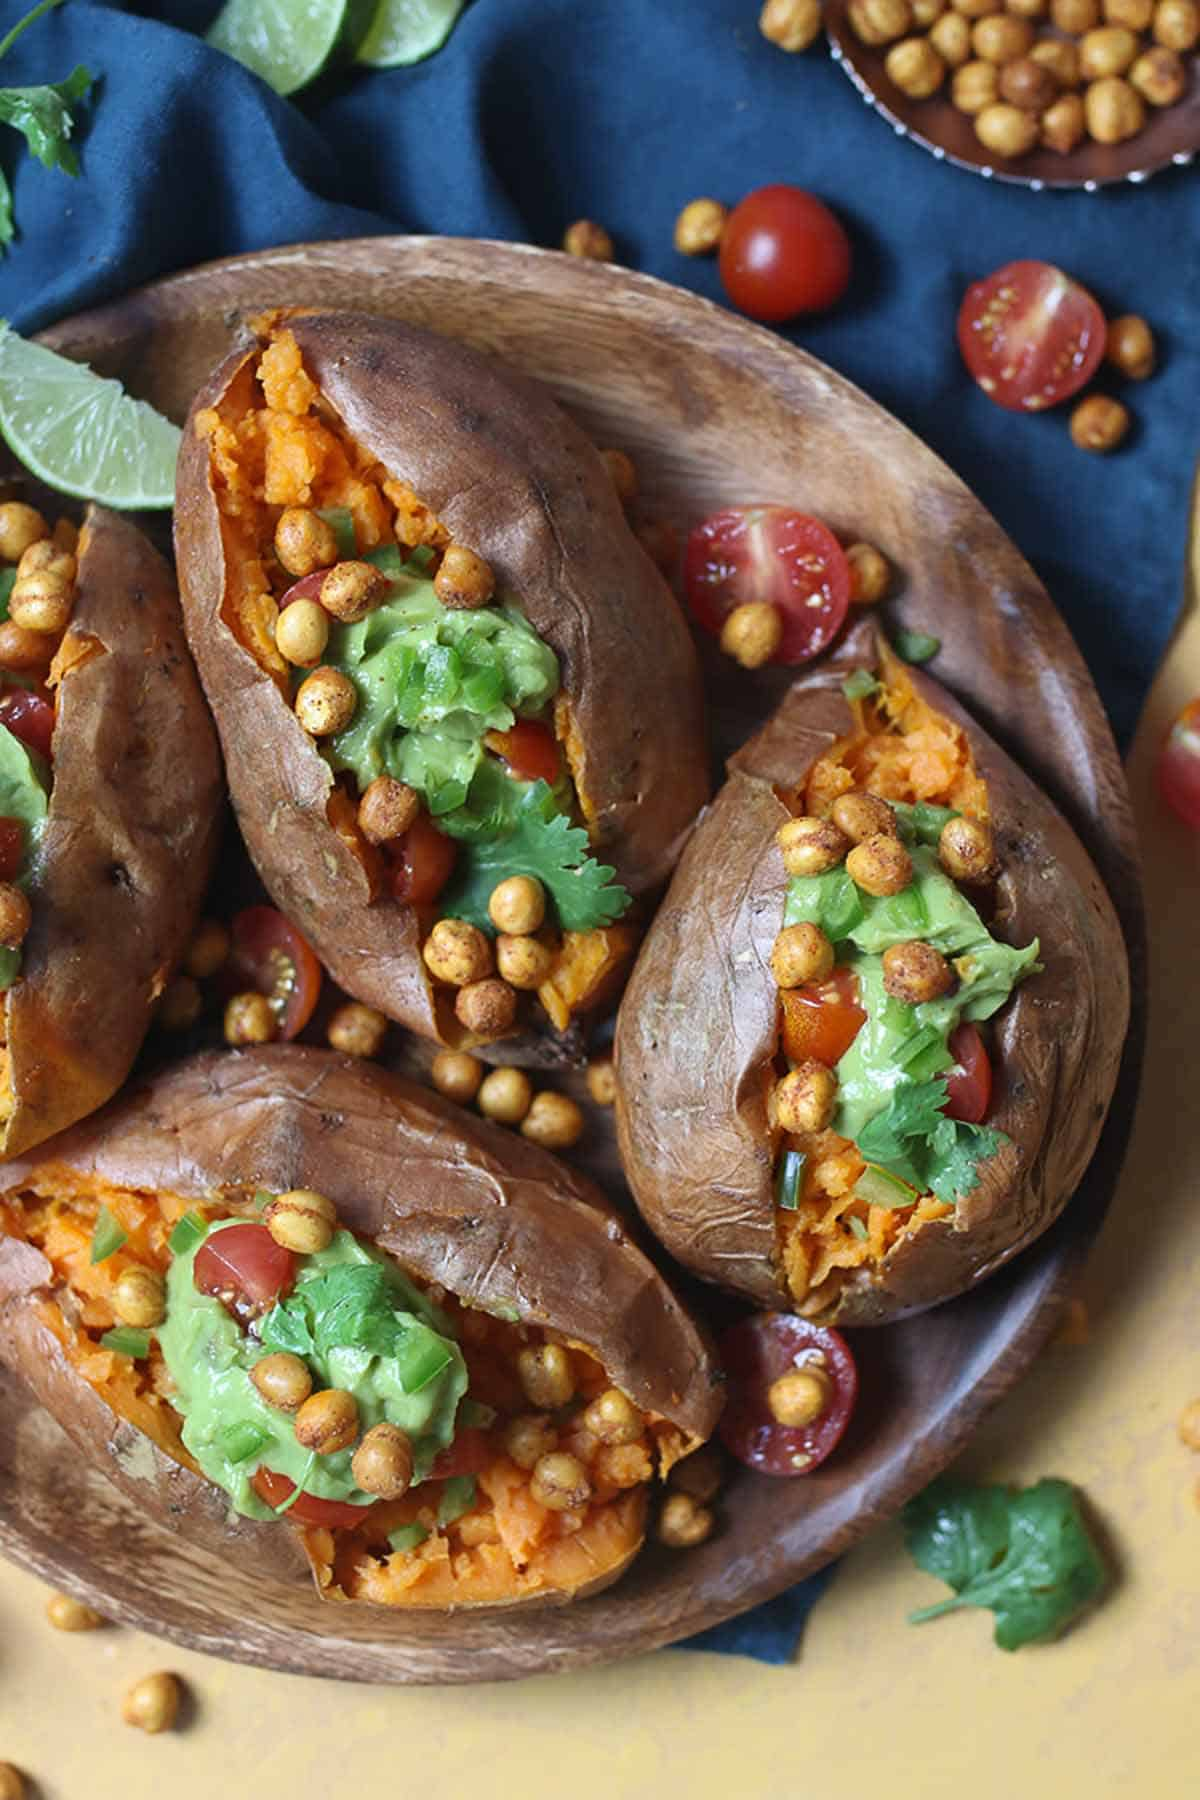 Birds eye view of four avocado stuffed sweet potatoes with guacamole and crispy chickpeas and garnished with cilantro.